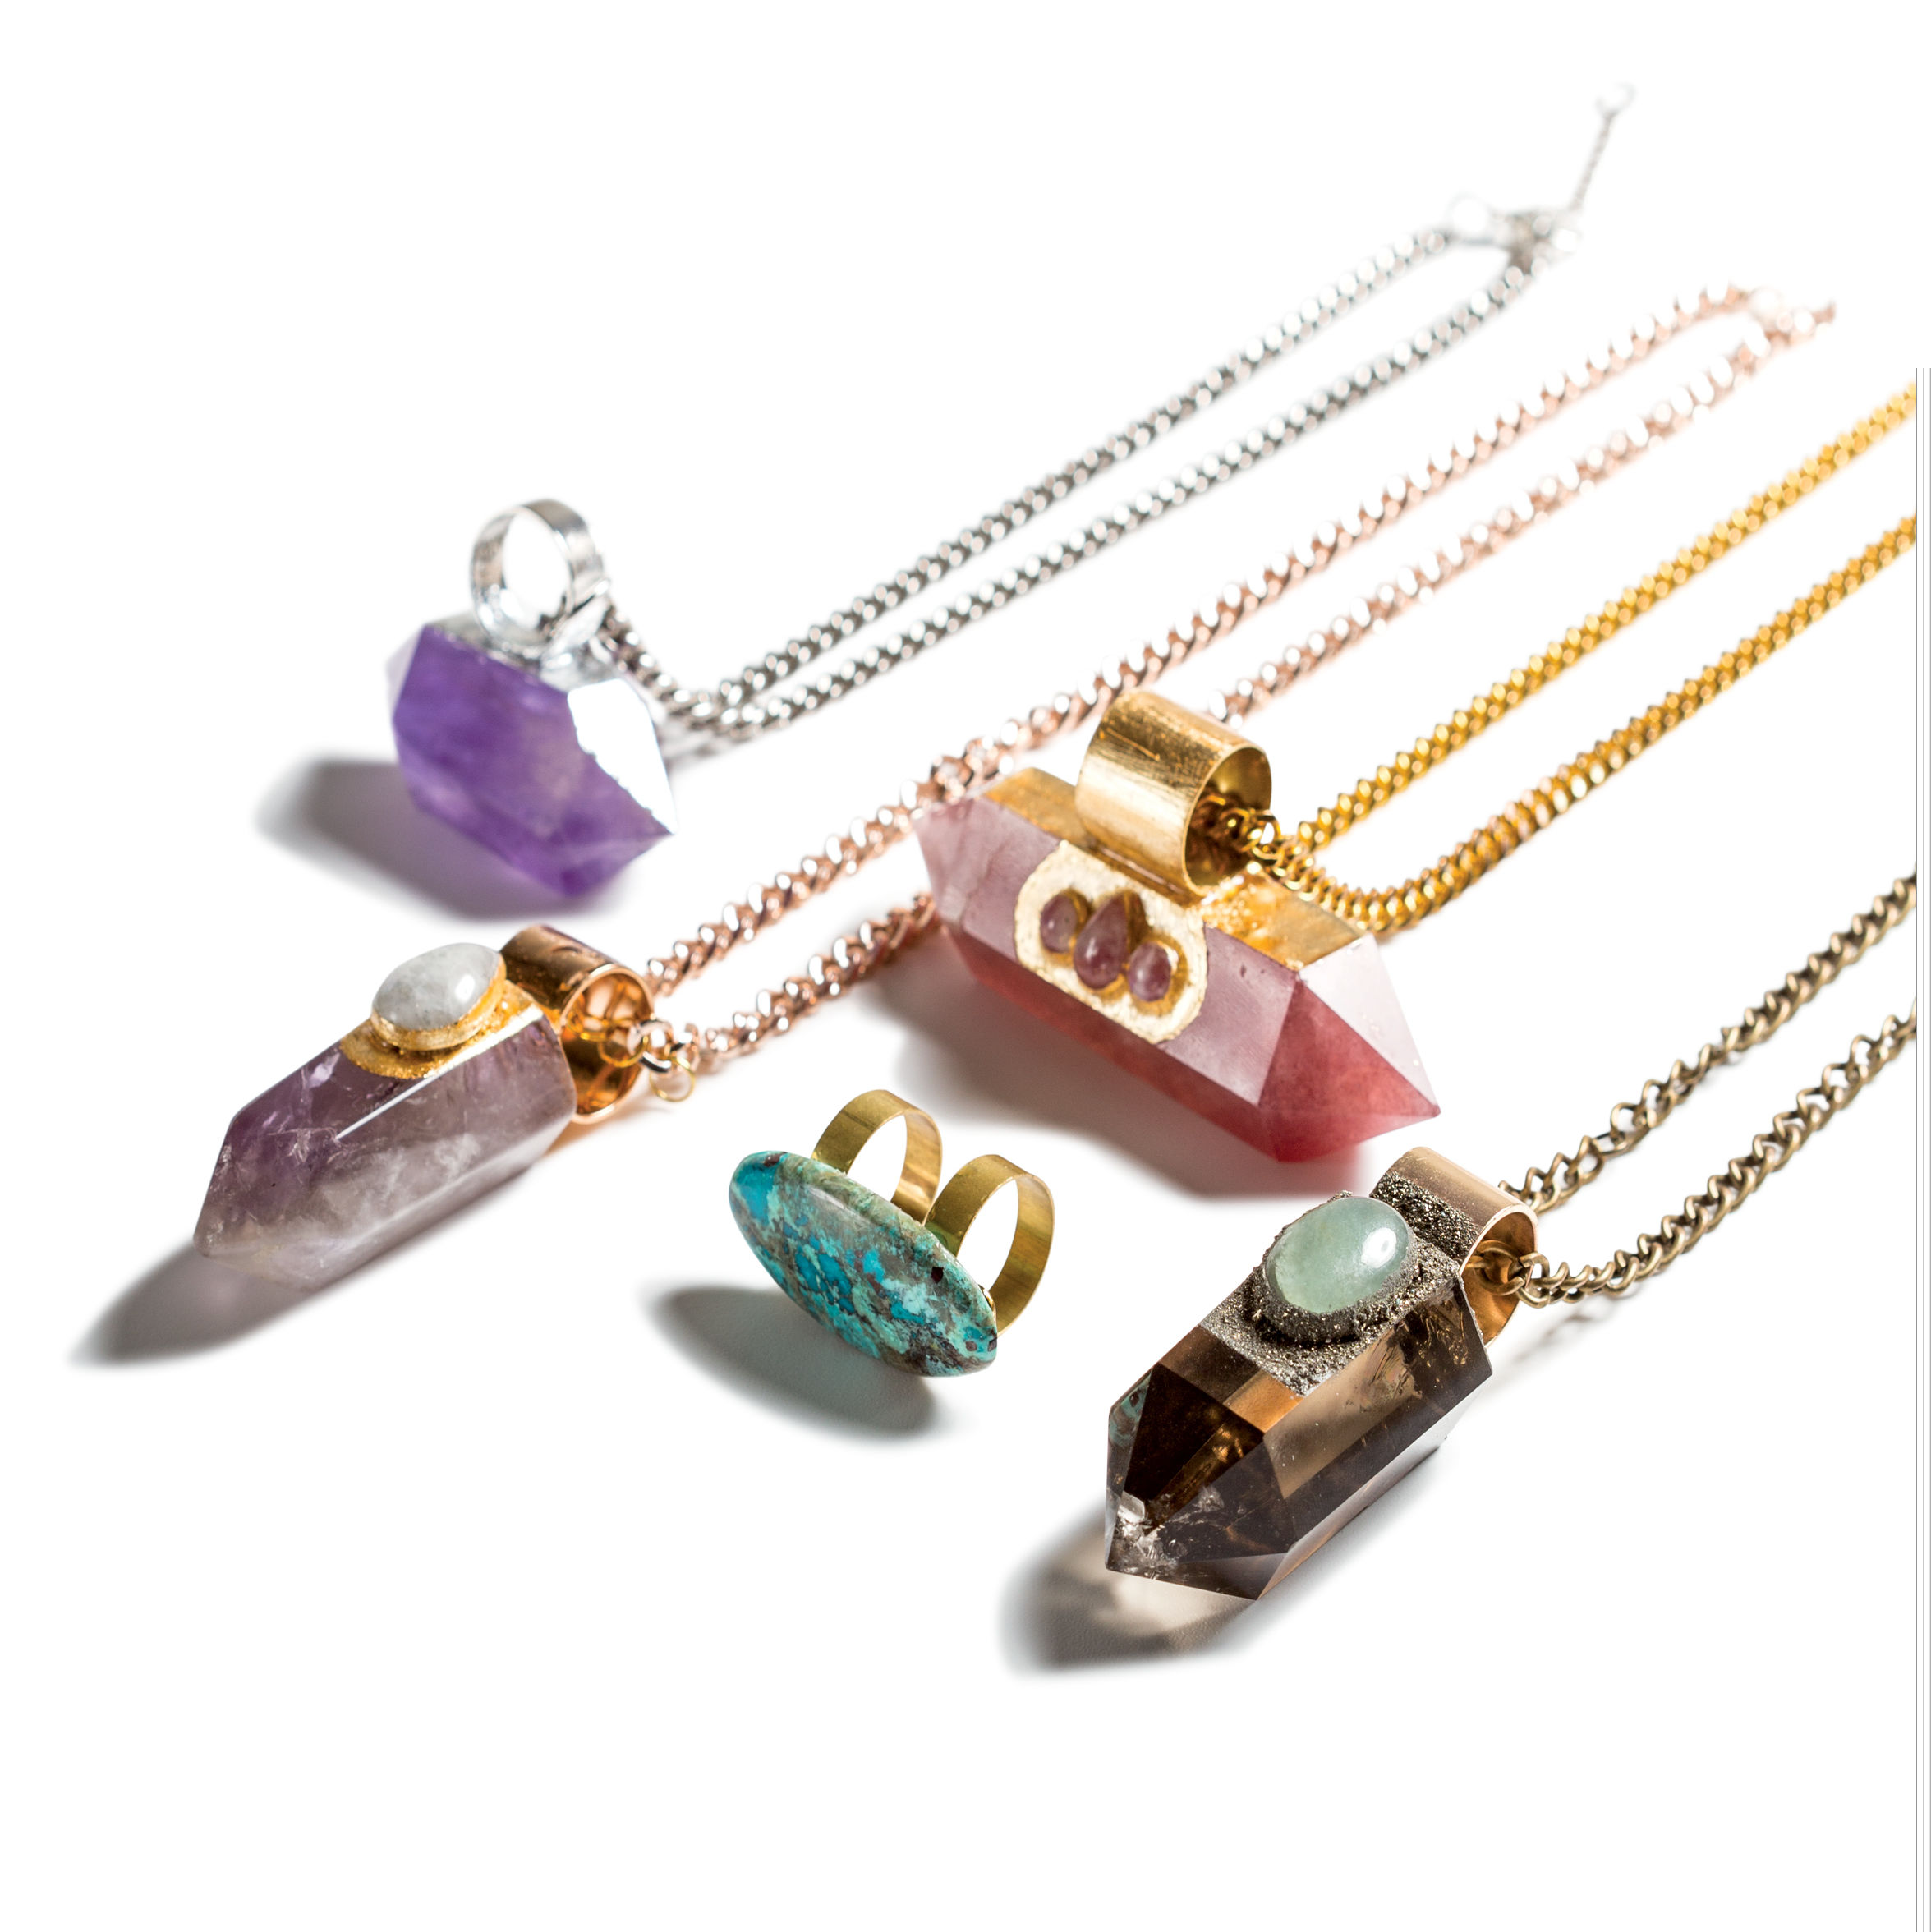 0717 trophy case jewelry so6vde